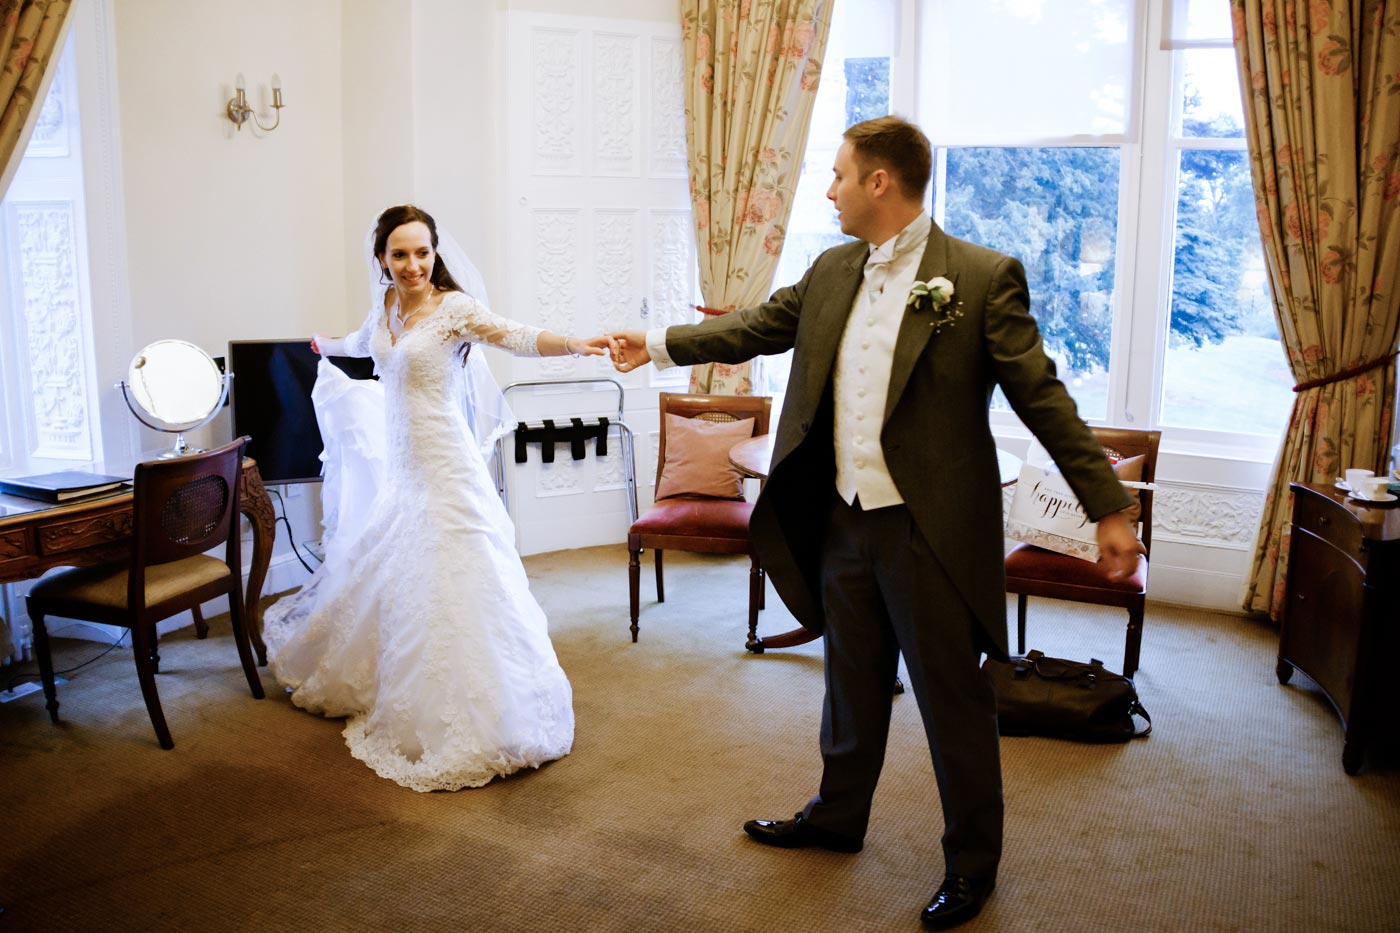 Bride and groom practising their first dance